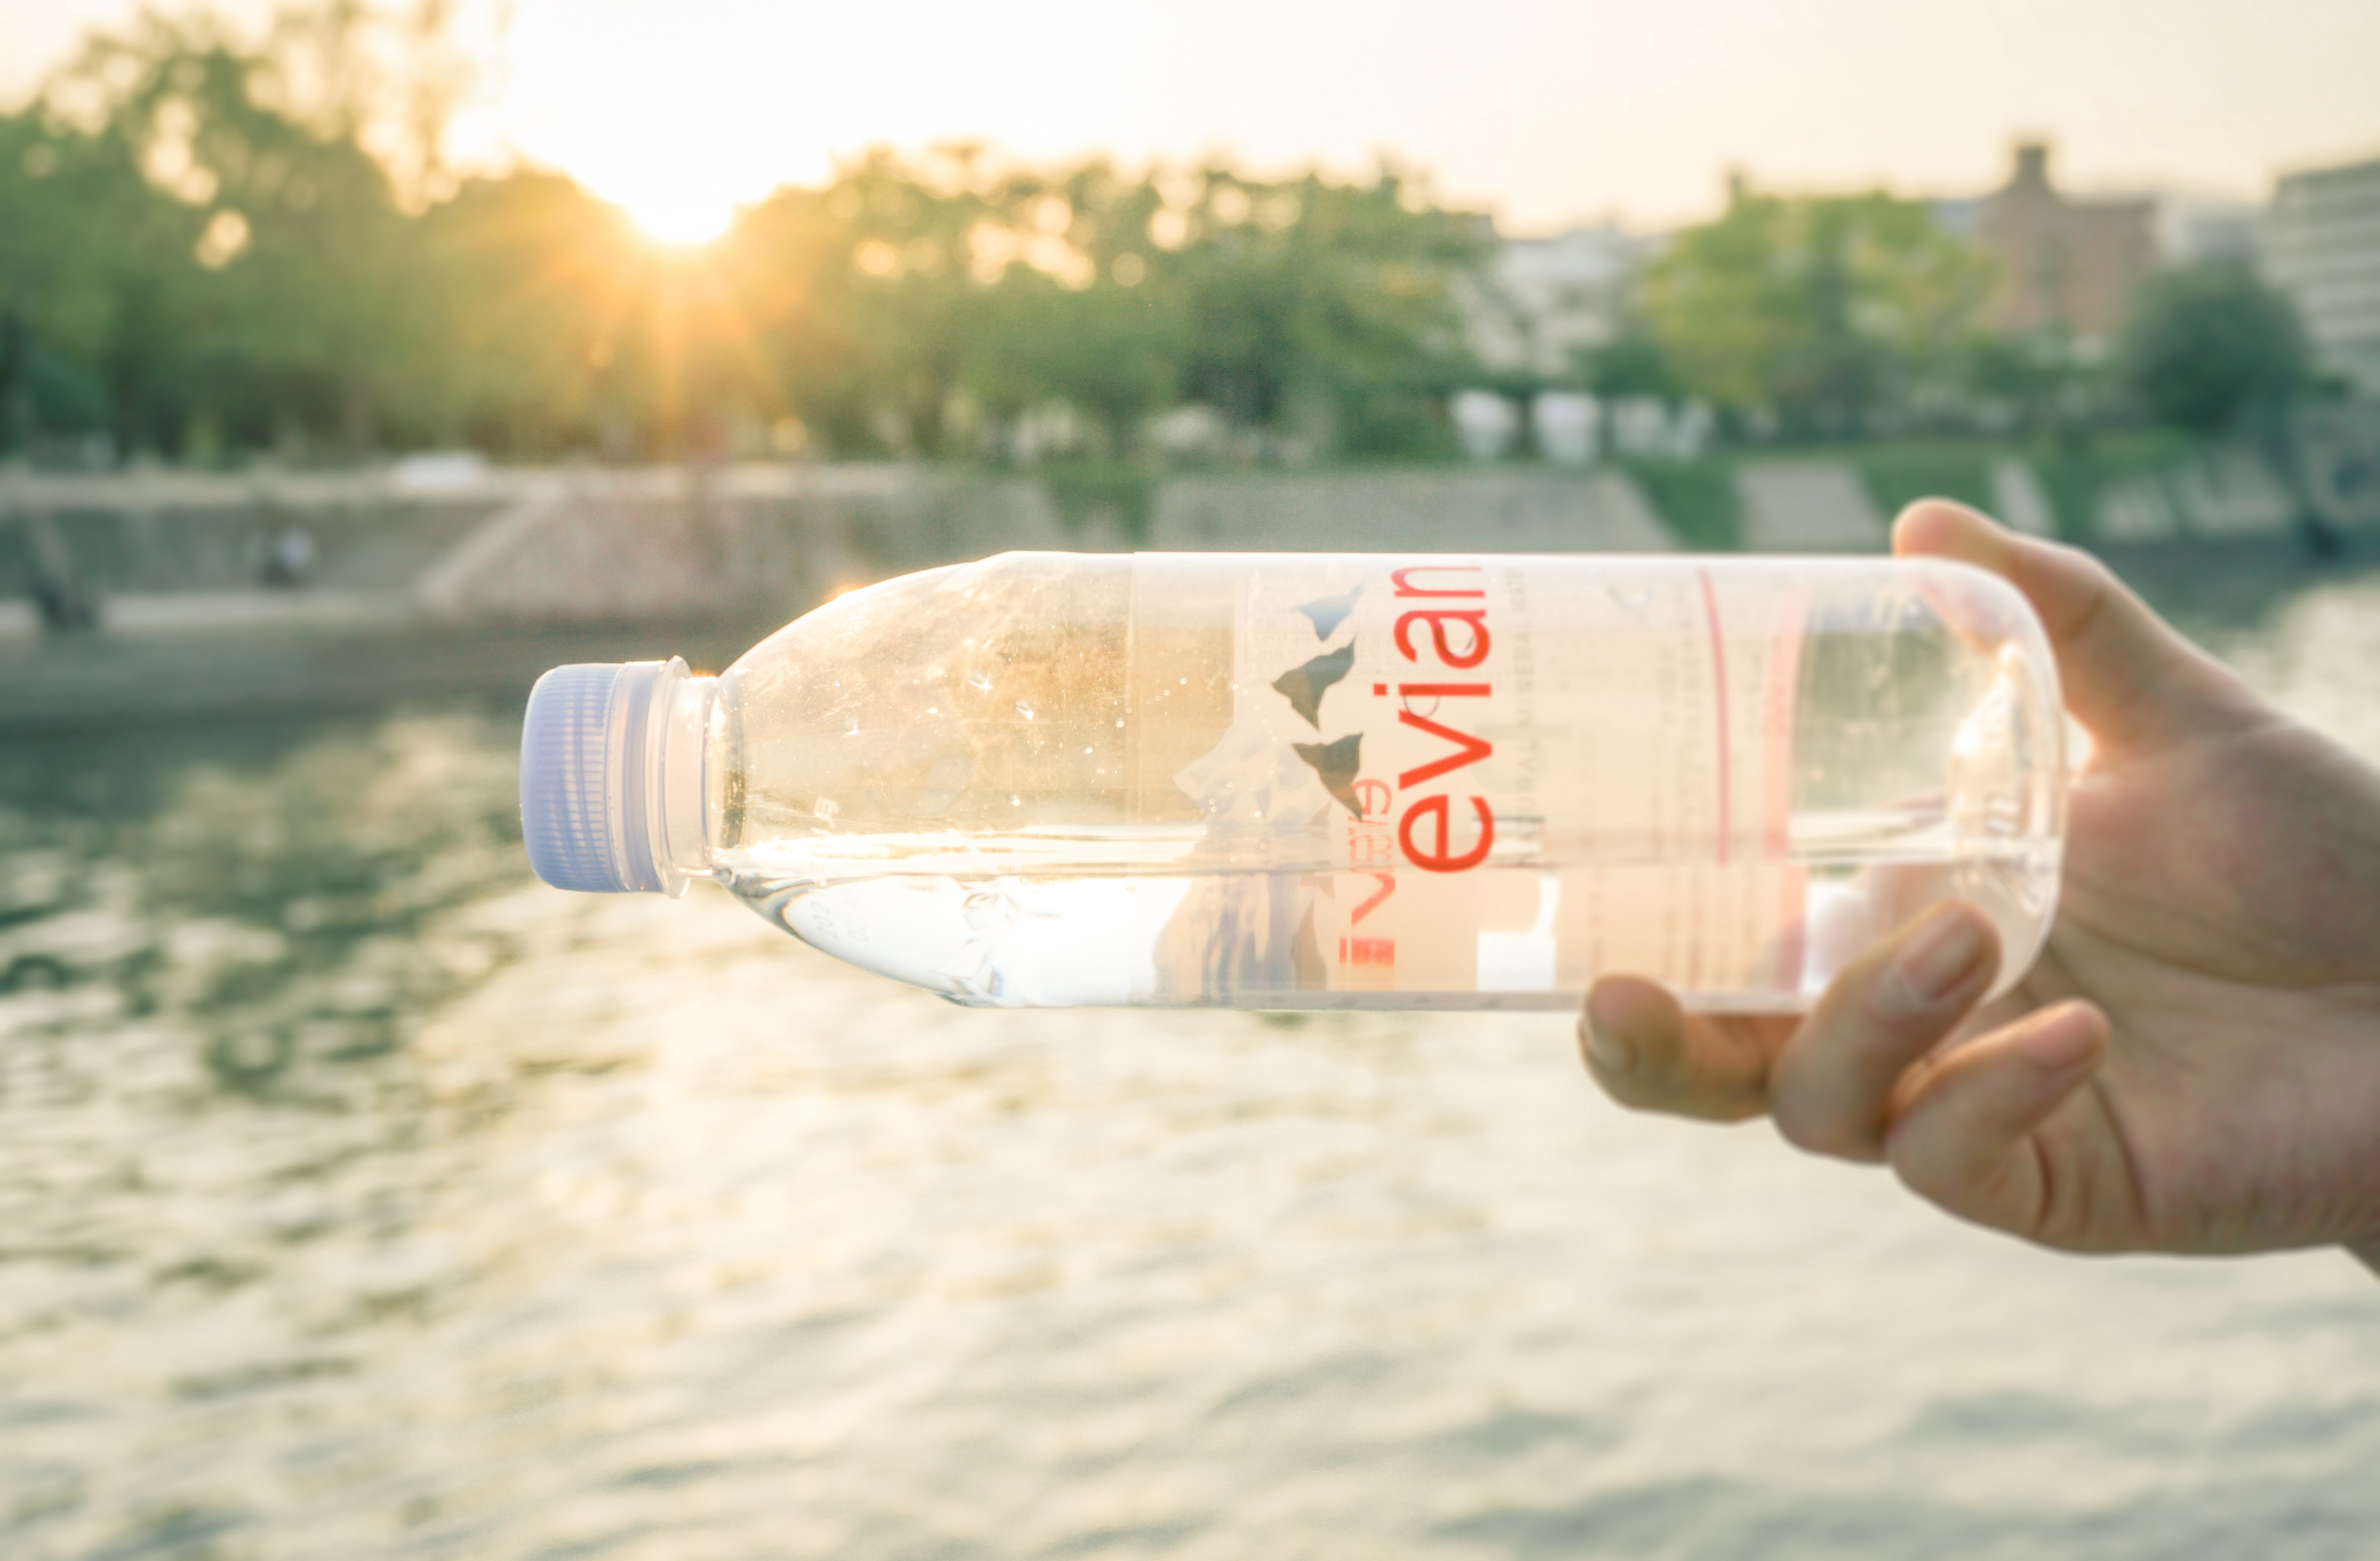 A person holding a bottle of Evian water.